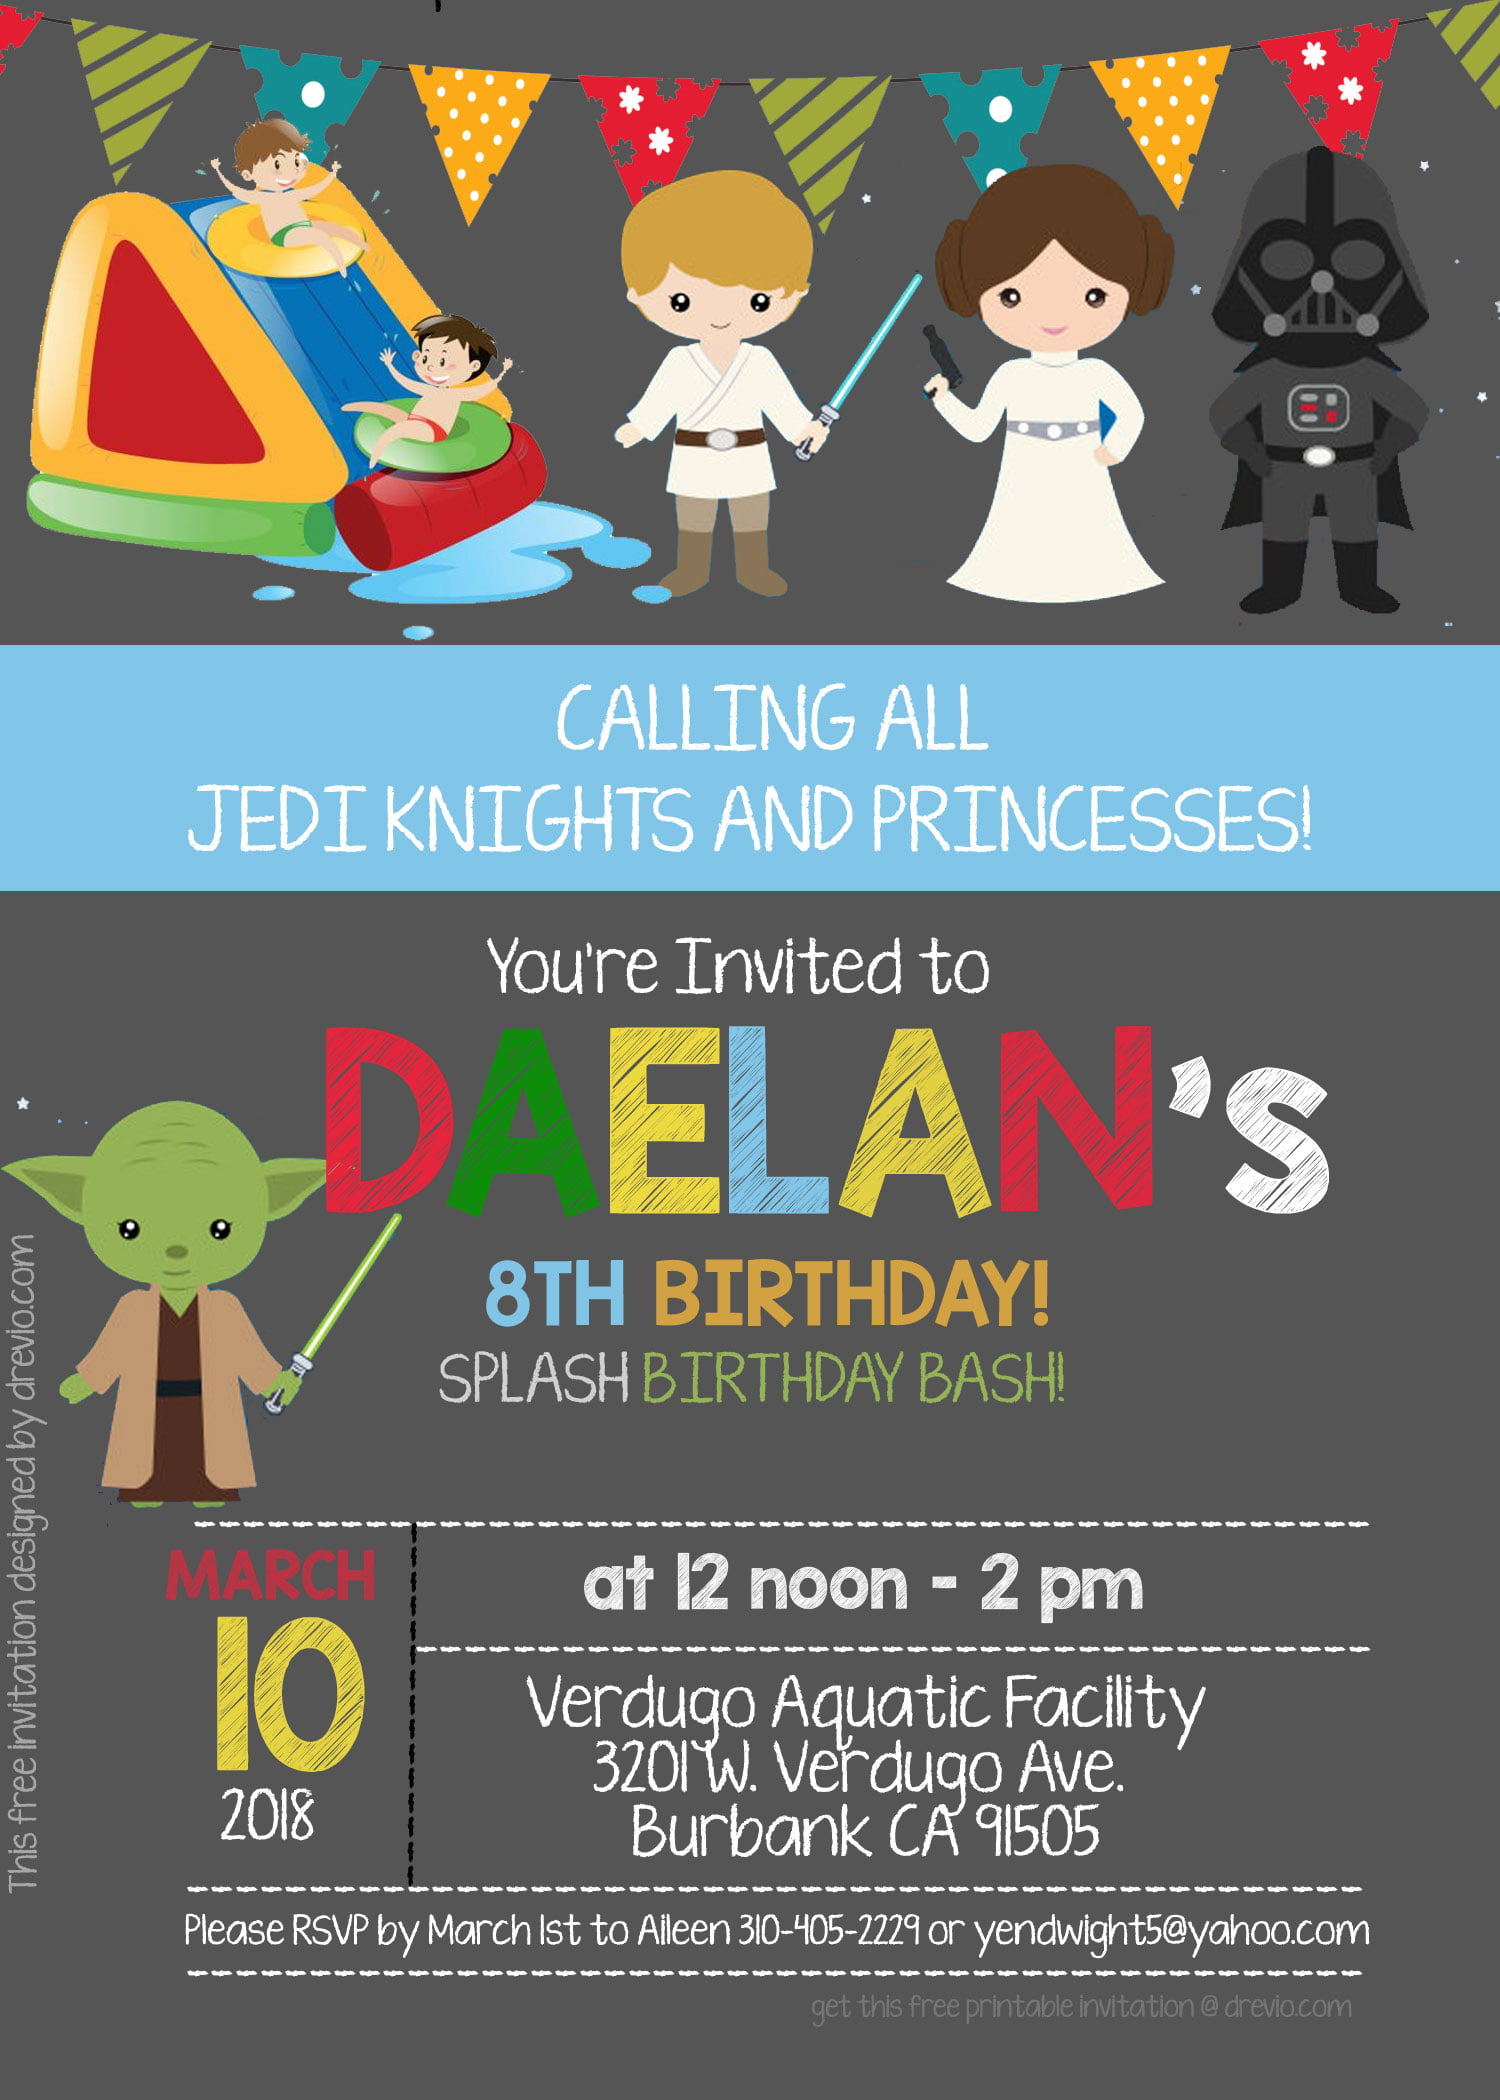 FREE Star Wars Pool Party Invitation Template – PSD | FREE ...